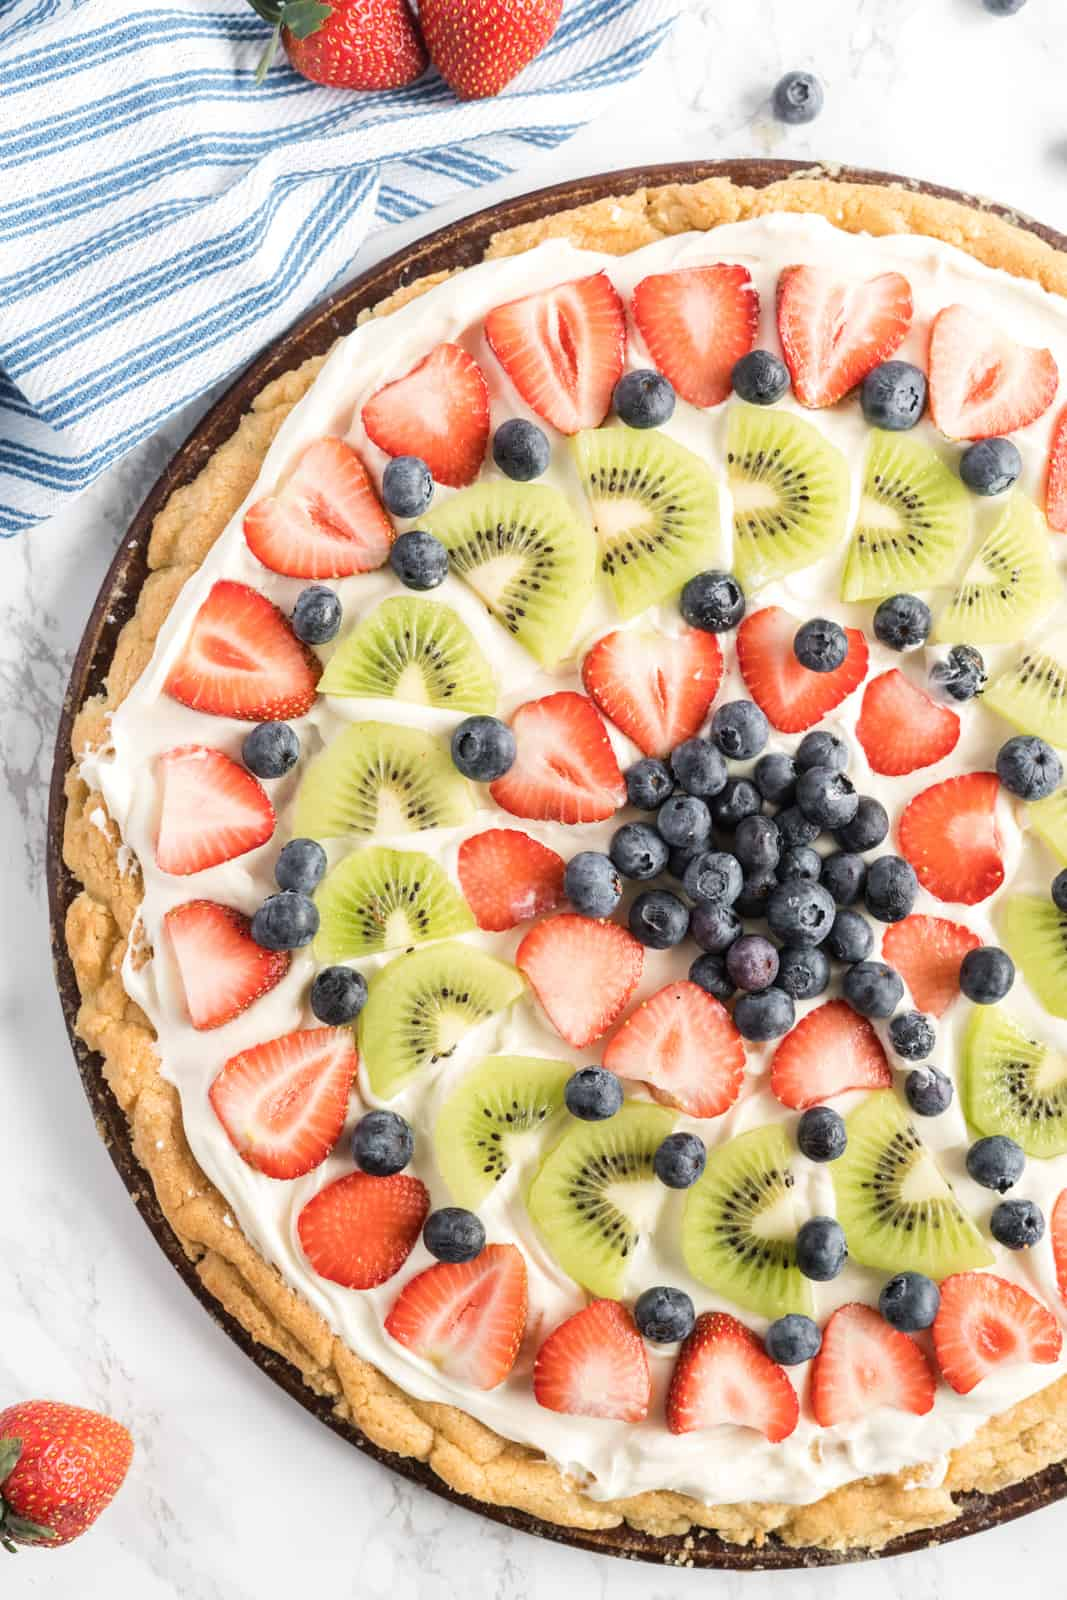 Overhead photo of decorated Fruit Pizza on pizza pan